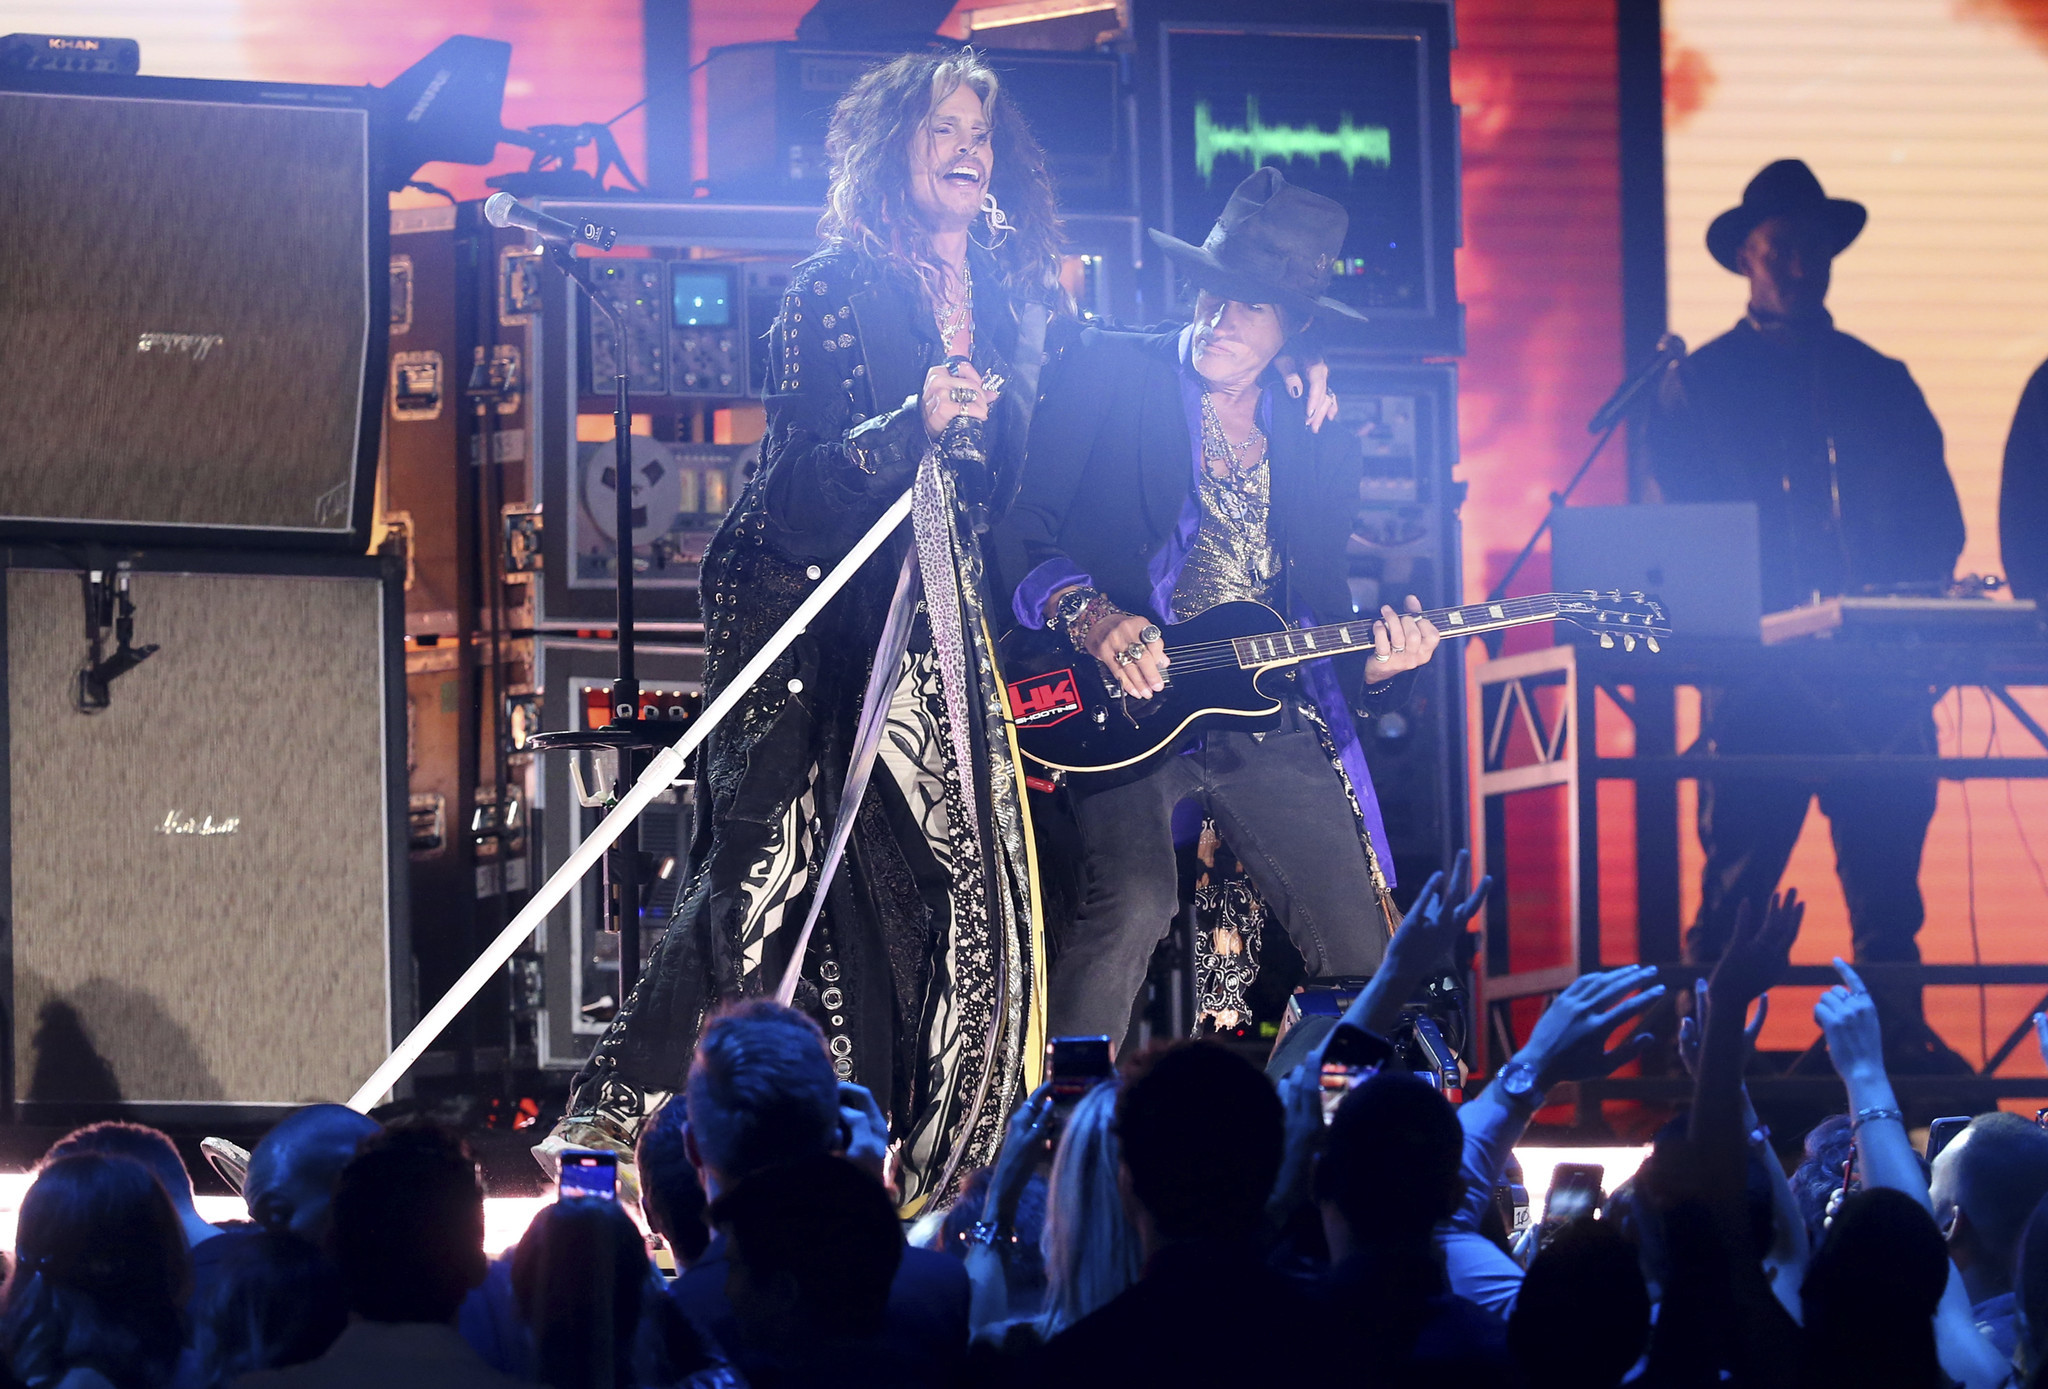 Aerosmith performs without drummer at Grammy Awards